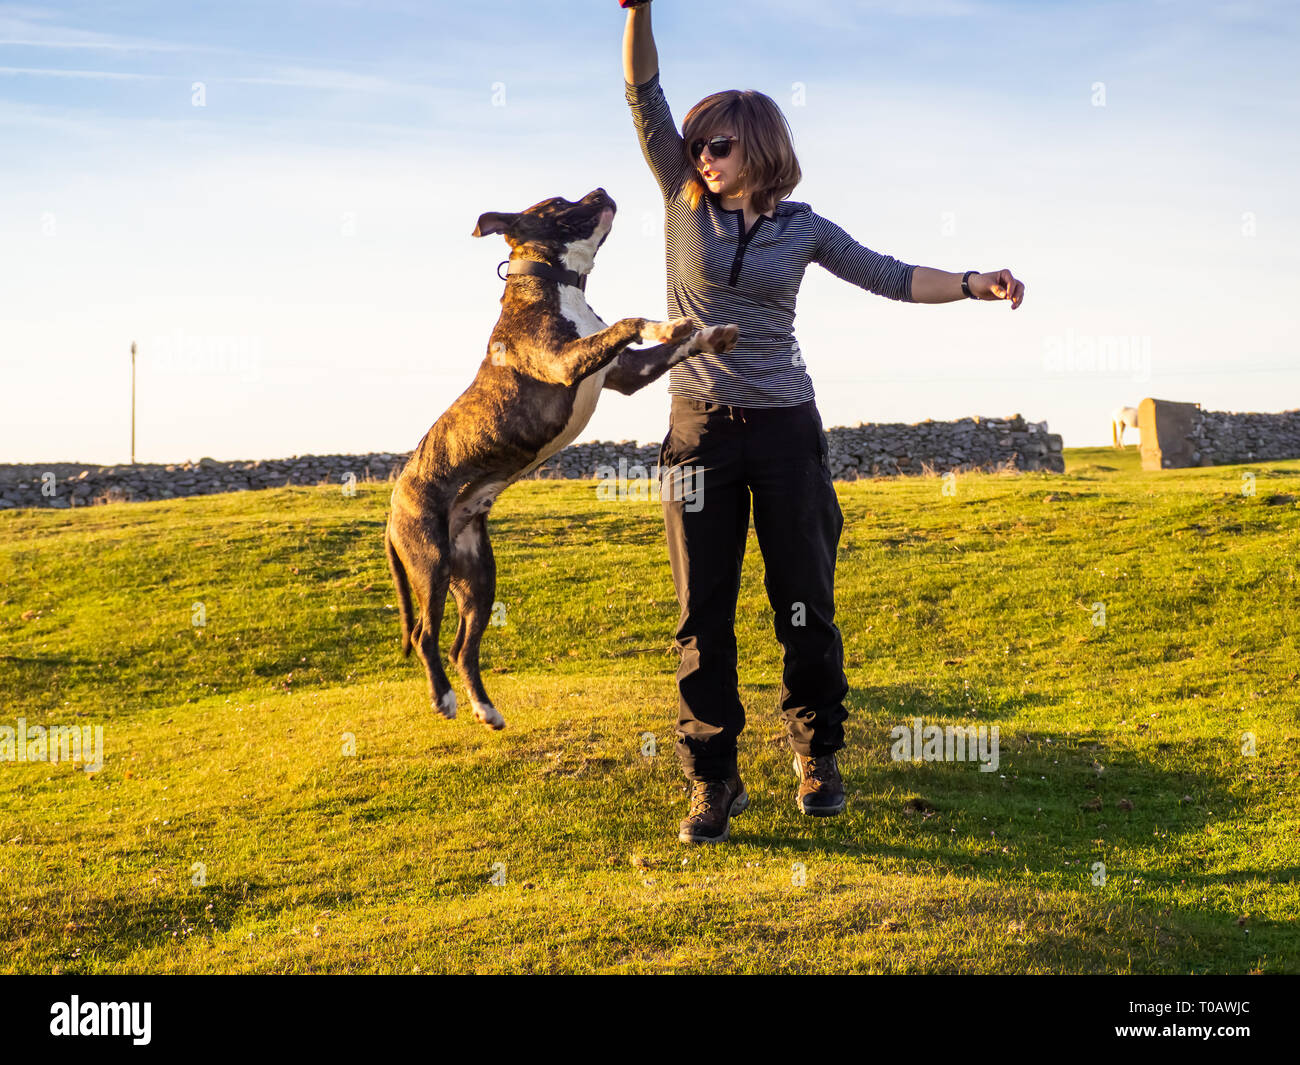 An adult woman playing with a young dog of the American staffordshire breed in countryside in springtime - Stock Image